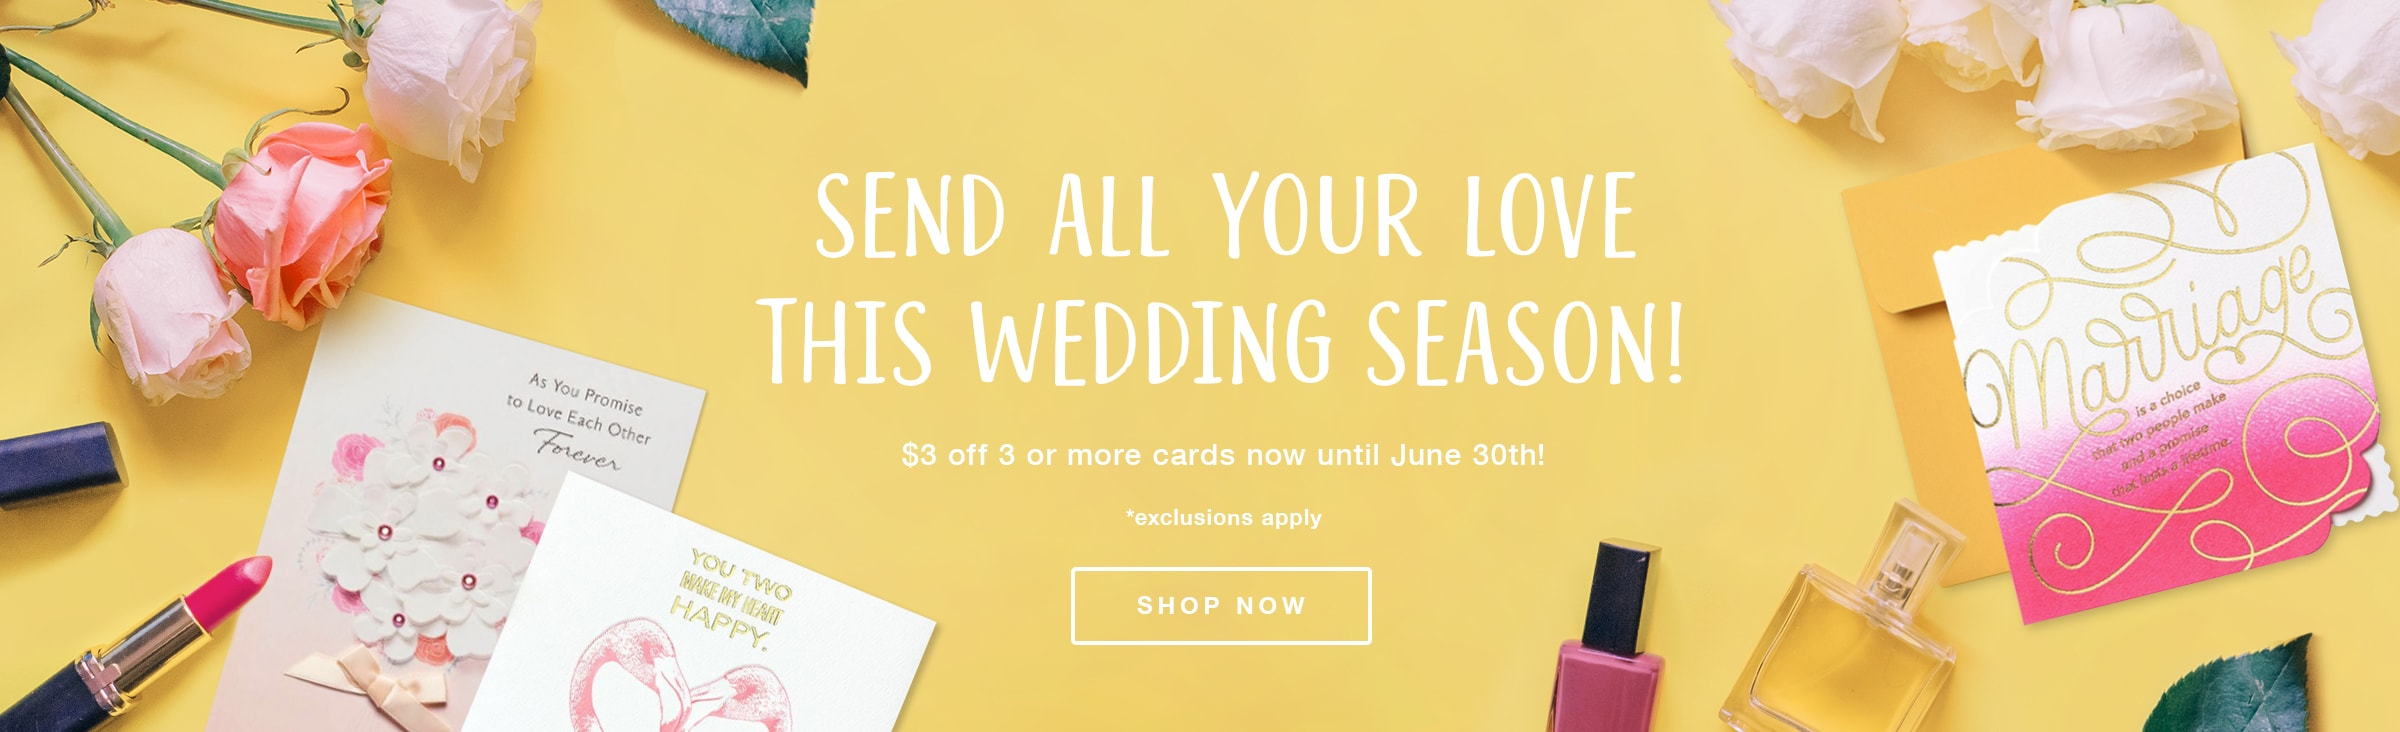 Send All Your Love This Wedding Season. $3 off 3 or more cards now until June 30th. Shop Now